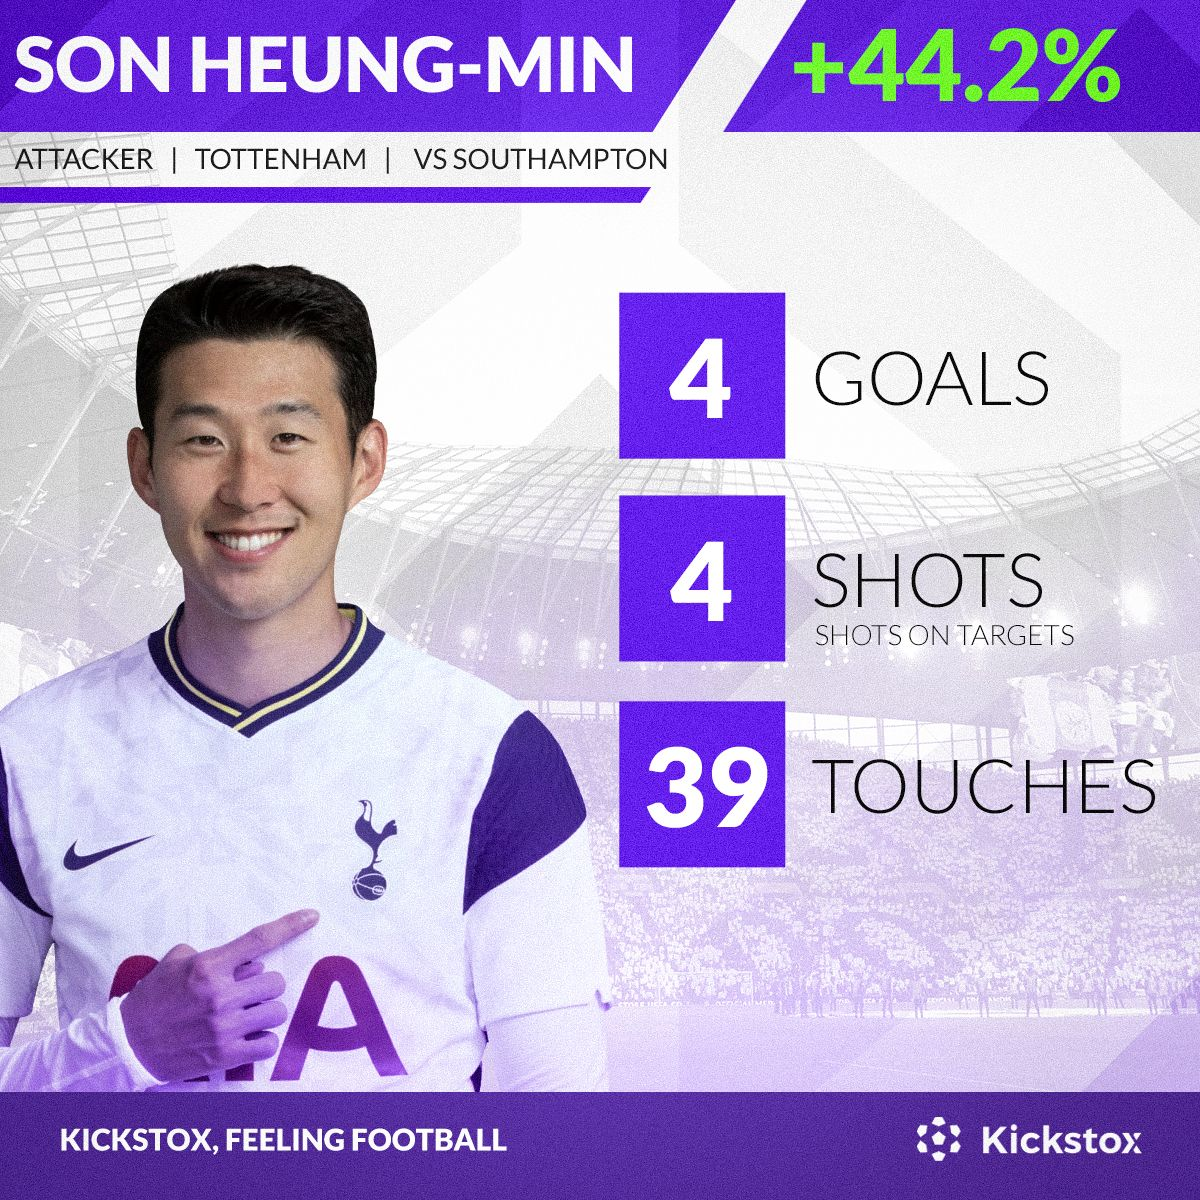 Big increases for the top performers in the Premier League🔥! 4 goals for Son and a clean sheet + penalty saved for Alisson! Did they make your portfolio BOOM🎇? ⚽️🏆💰📈  #son #alisson #tottenhamhotspur #liverpool #premierleague #Kickstox #football #trading #game #battle https://t.co/1GB71nTuh4